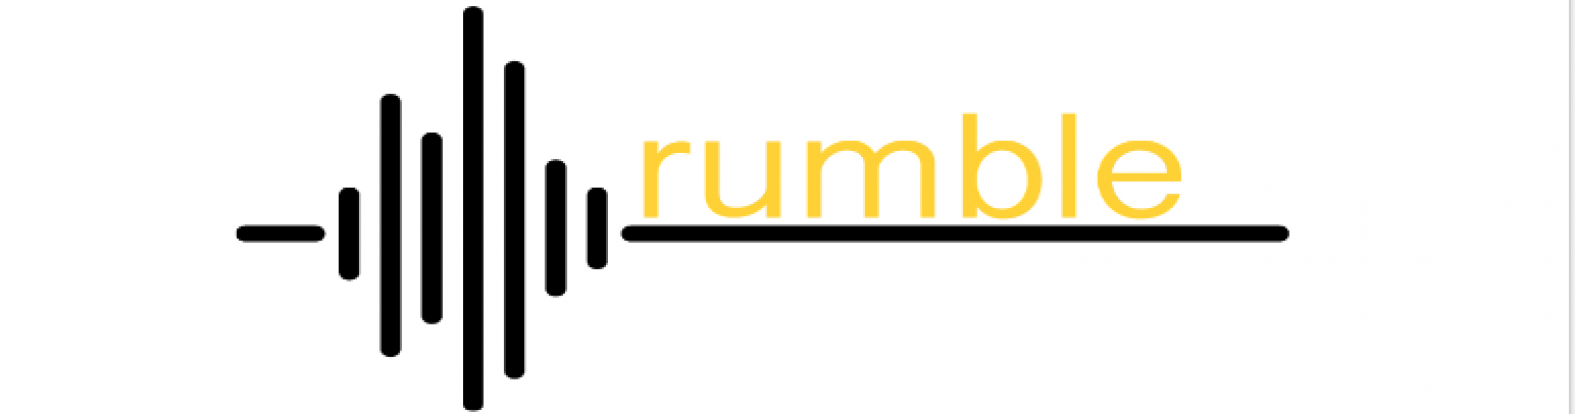 rumble_banner_2.png